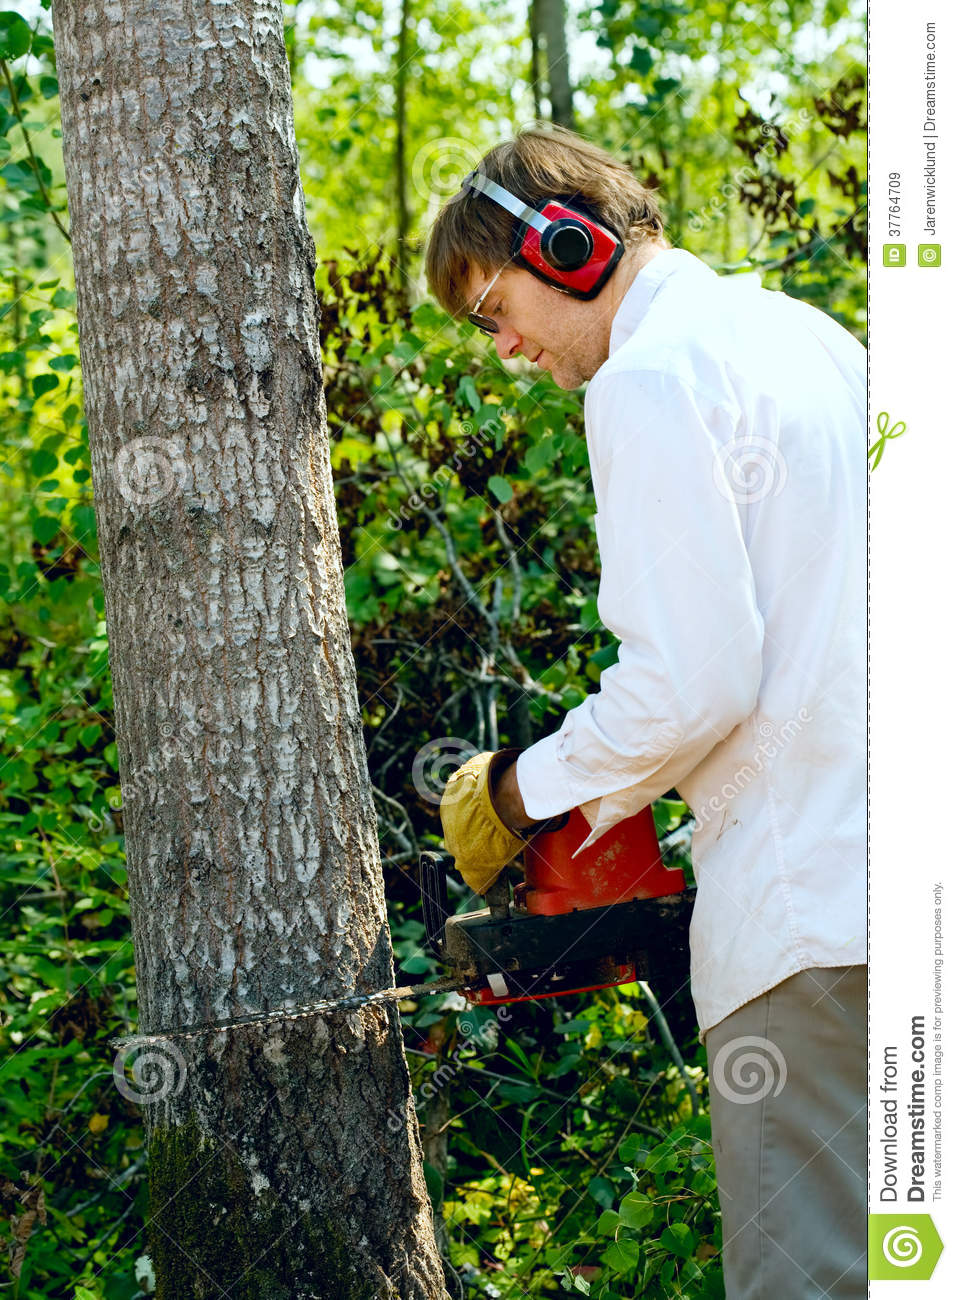 Man cutting down a tree with a chainsaw